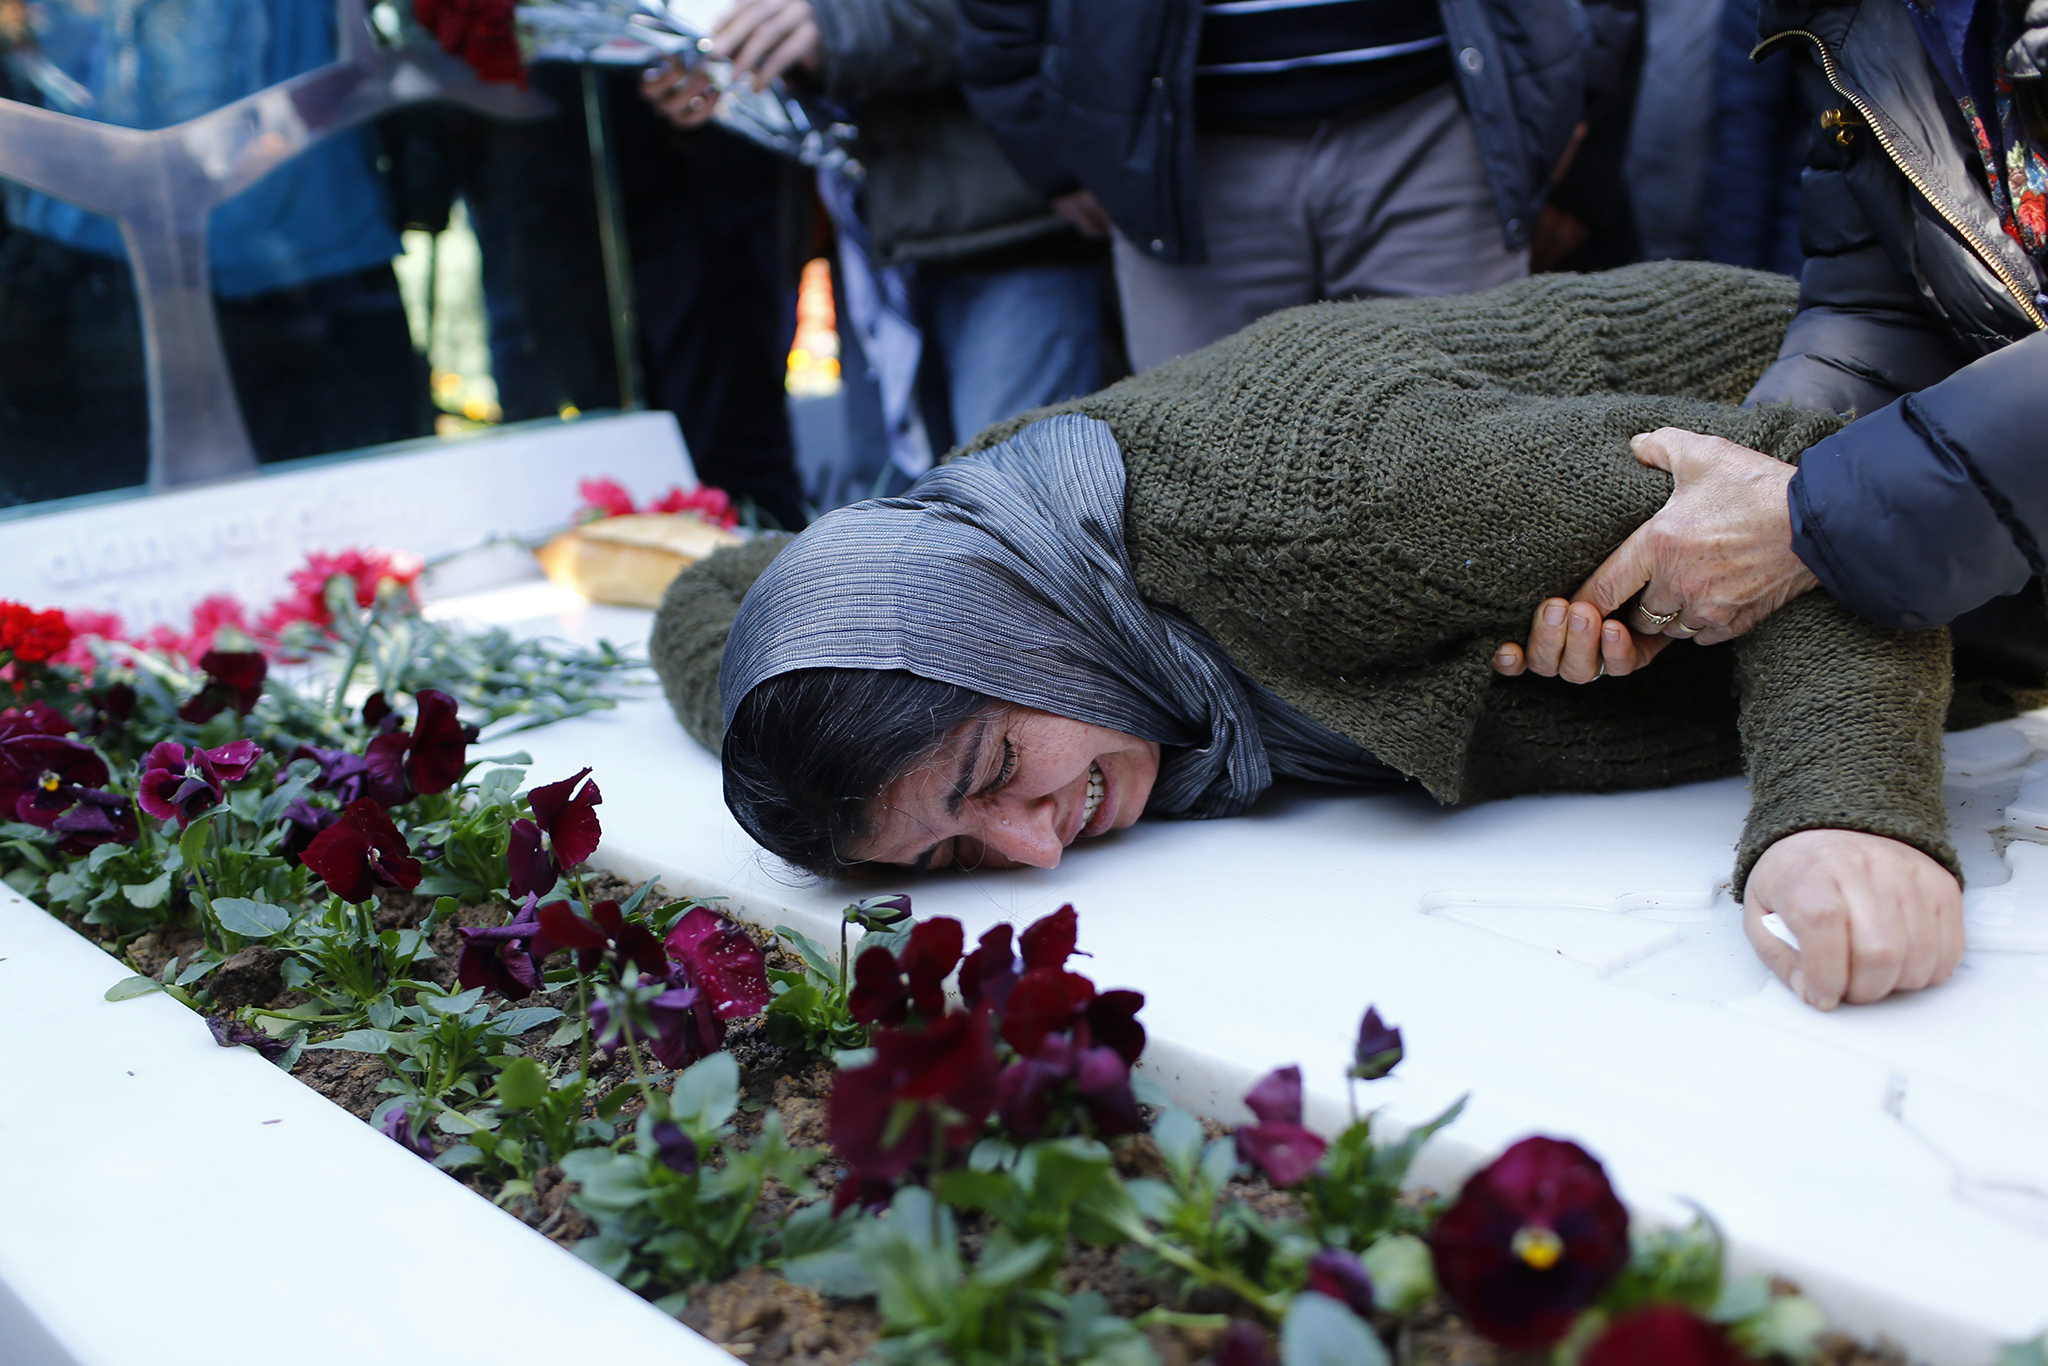 Gulsum Elvan, mother of slain Berkin Elvan, mourns at her son's grave during a rally marking second anniversary of his death in Istanbul, Turkey. Berkin Elvan, 15 years old, died on 11 March 2014 after 296 days in a coma as a consequence of injuries suffered when he was hit by a gas canister during the police crackdown on protesters at Gezi Park in June 2013.